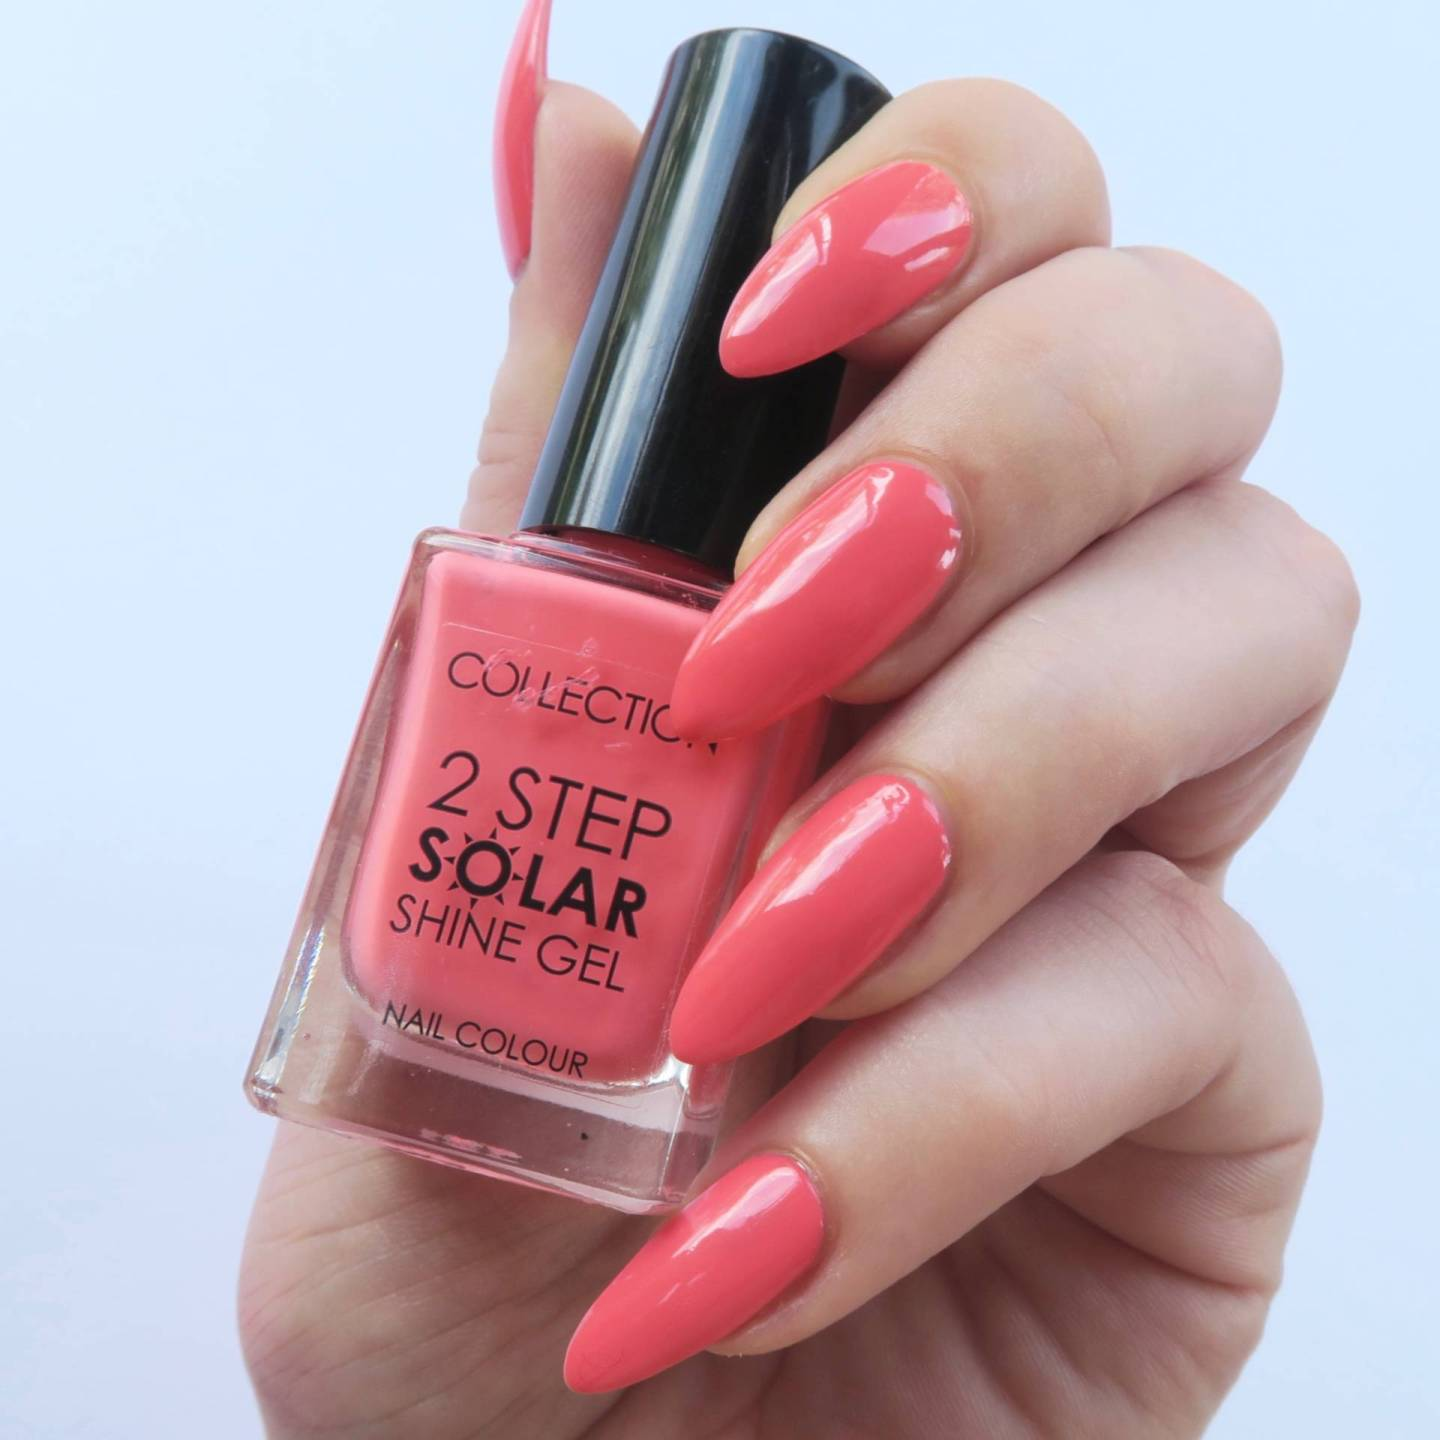 Collection Solar Shine Gels